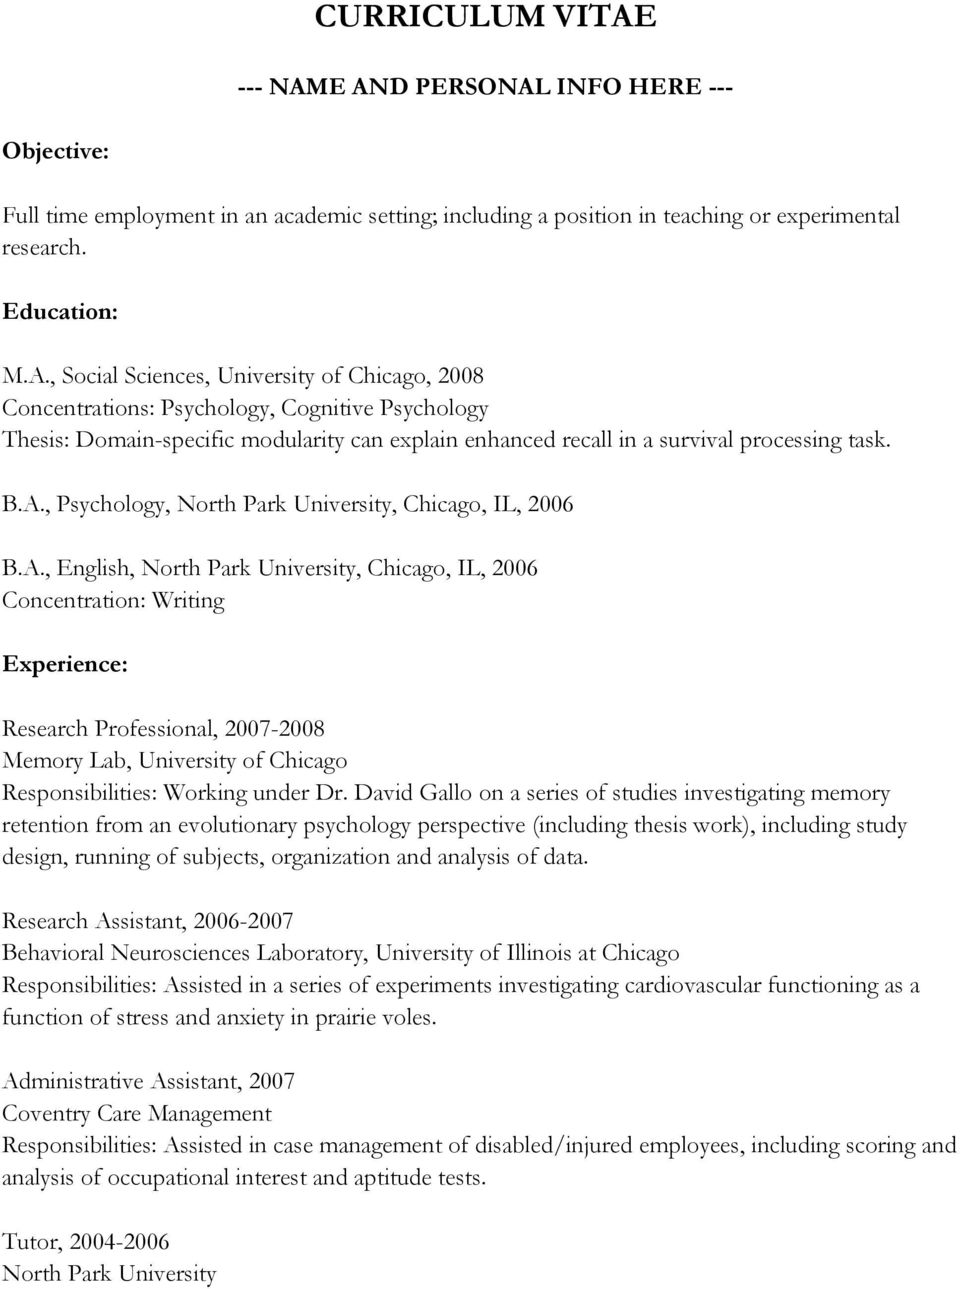 B.A., Psychology, North Park University, Chicago, IL, 2006 B.A., English, North Park University, Chicago, IL, 2006 Concentration: Writing Experience: Research Professional, 2007-2008 Memory Lab, University of Chicago Responsibilities: Working under Dr.